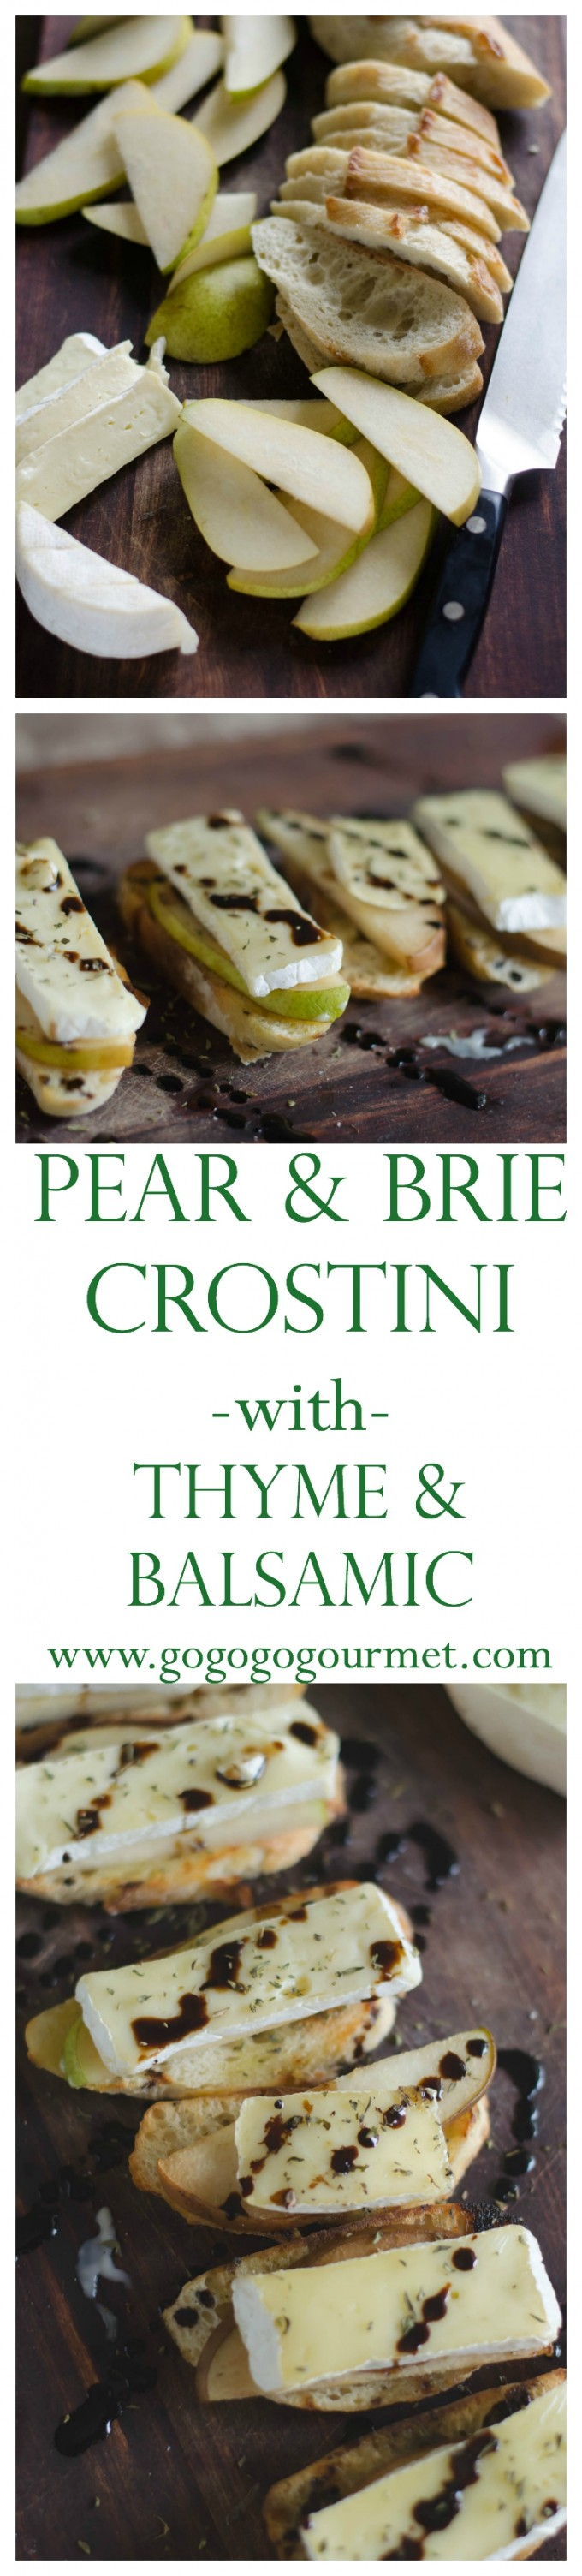 This Pear and Brie Crostini with Balsamic and Thyme is the ultimate snack or appetizer- fast to make, almost no dishes, and everyone loves them! via @gogogogourmet